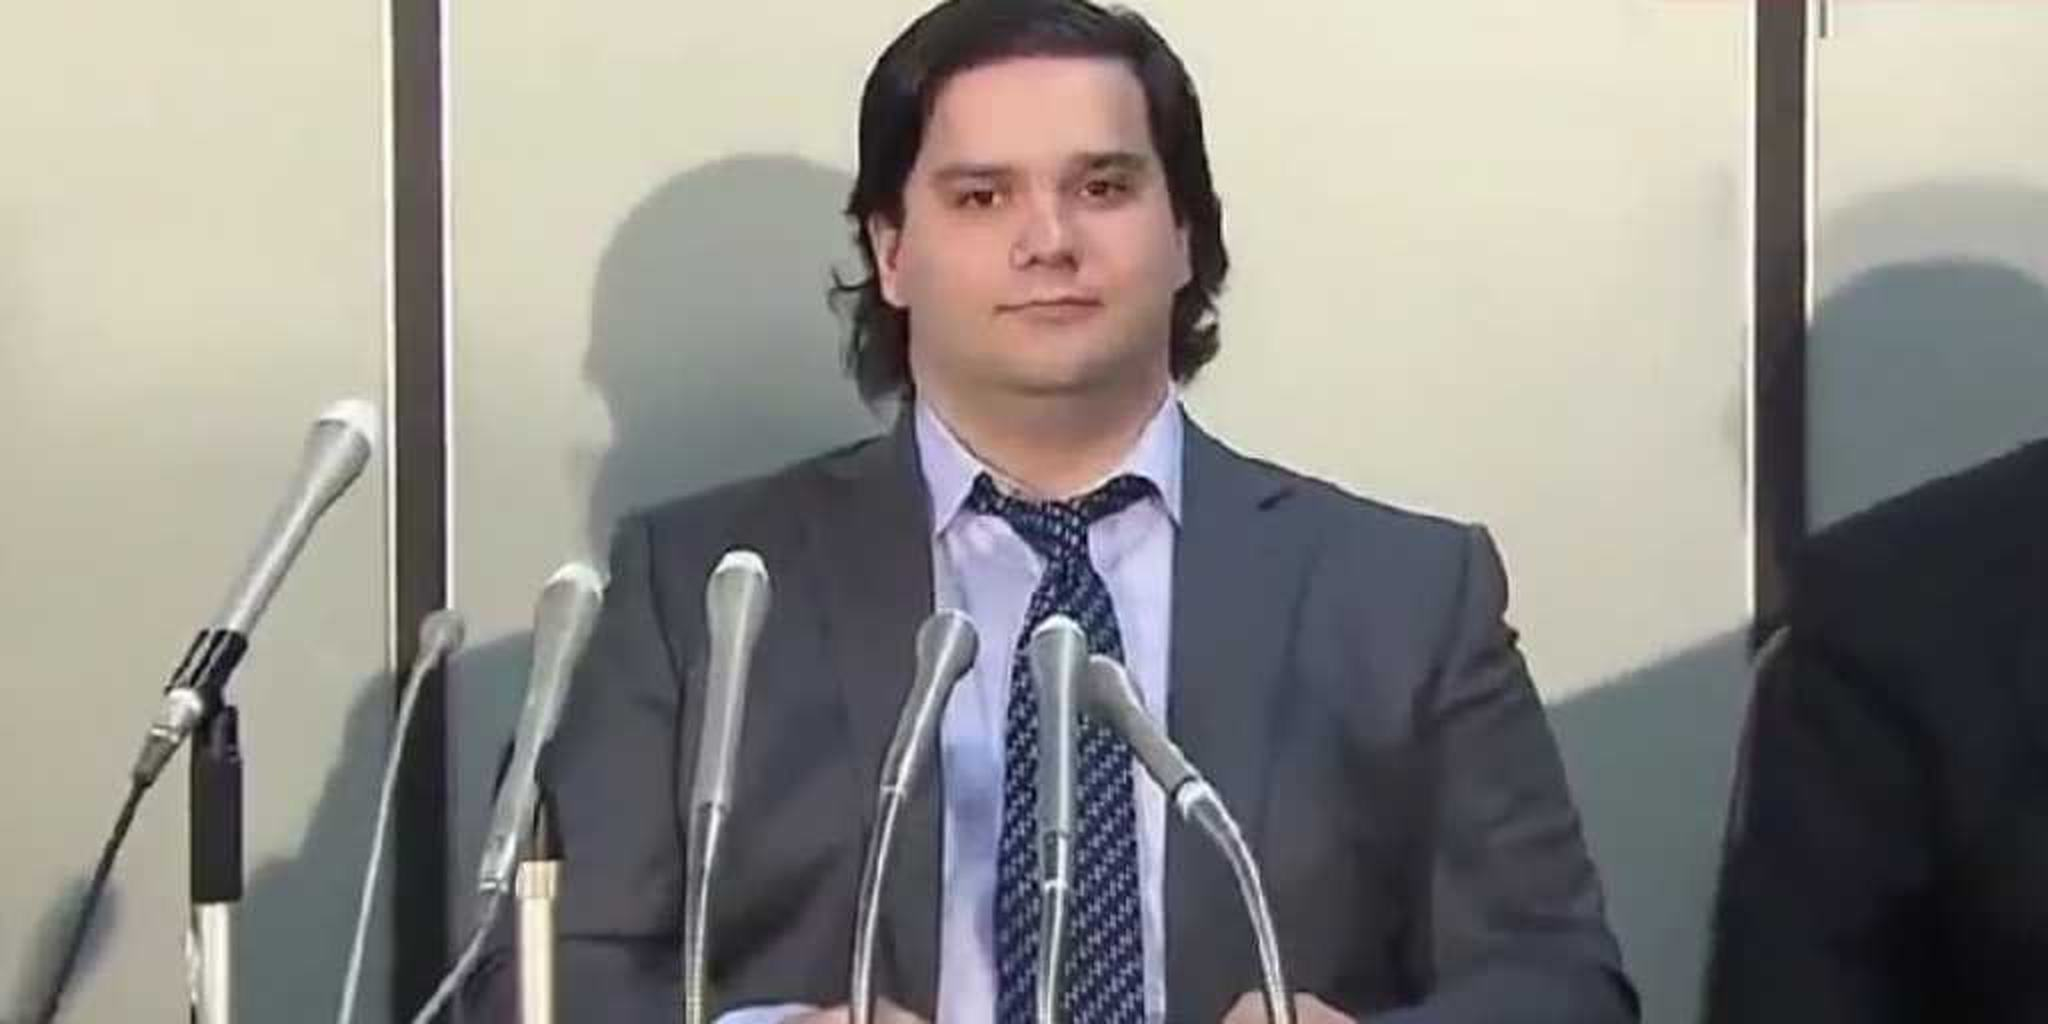 Breaking: MtGox CEO Faces Court Verdict in 3 Days. Is This The End of the Story? 13